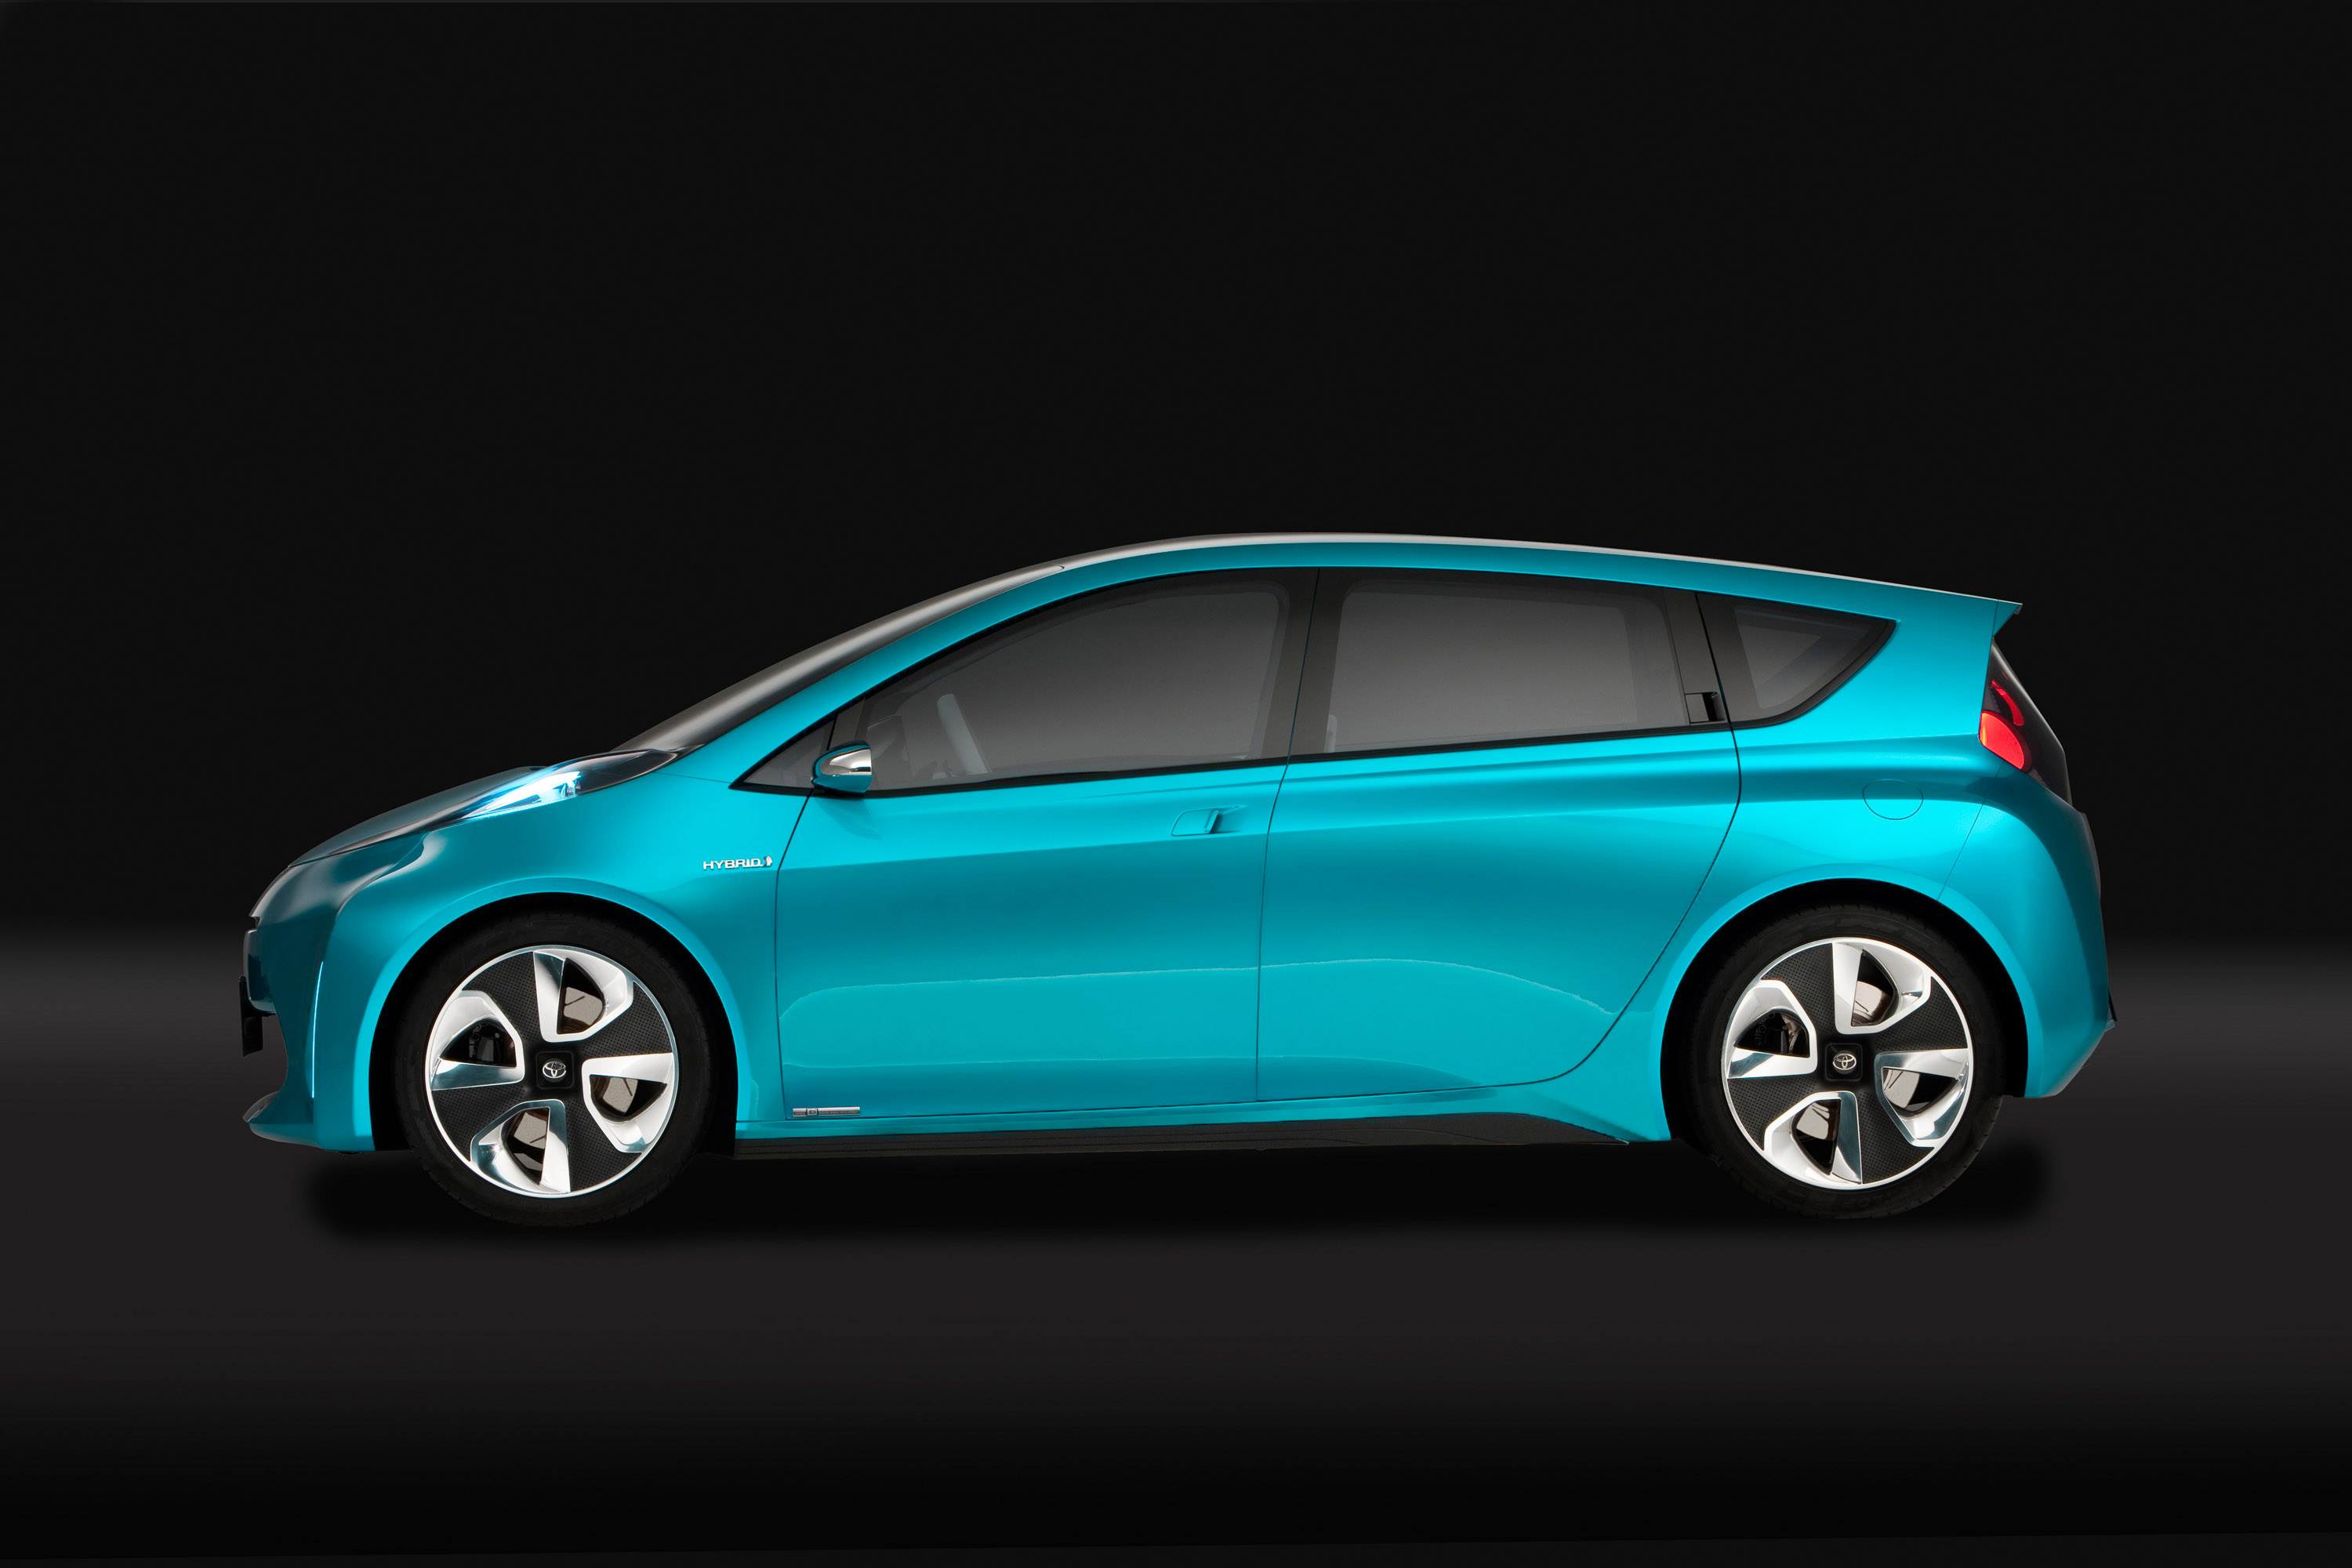 Toyota Prius Concept Cars Wallpapers & Images